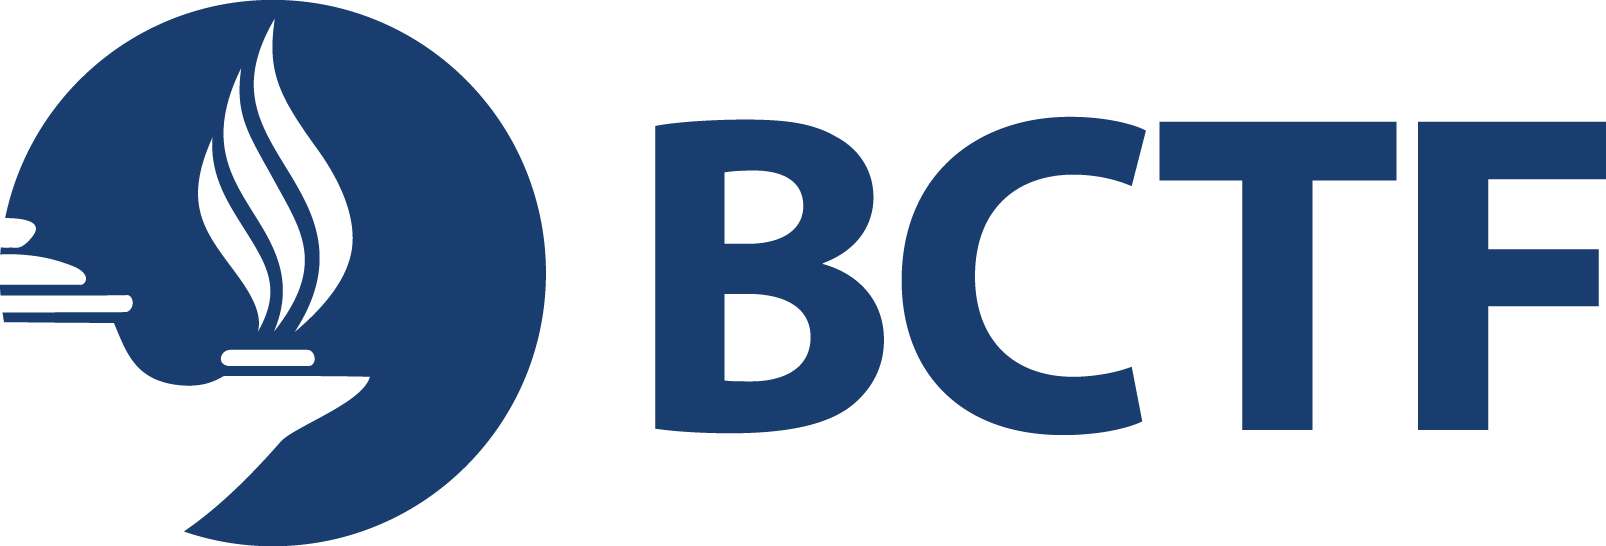 2017-NEW_BCTF_Logo-Blue_Lamp_with_text-300ppi.png